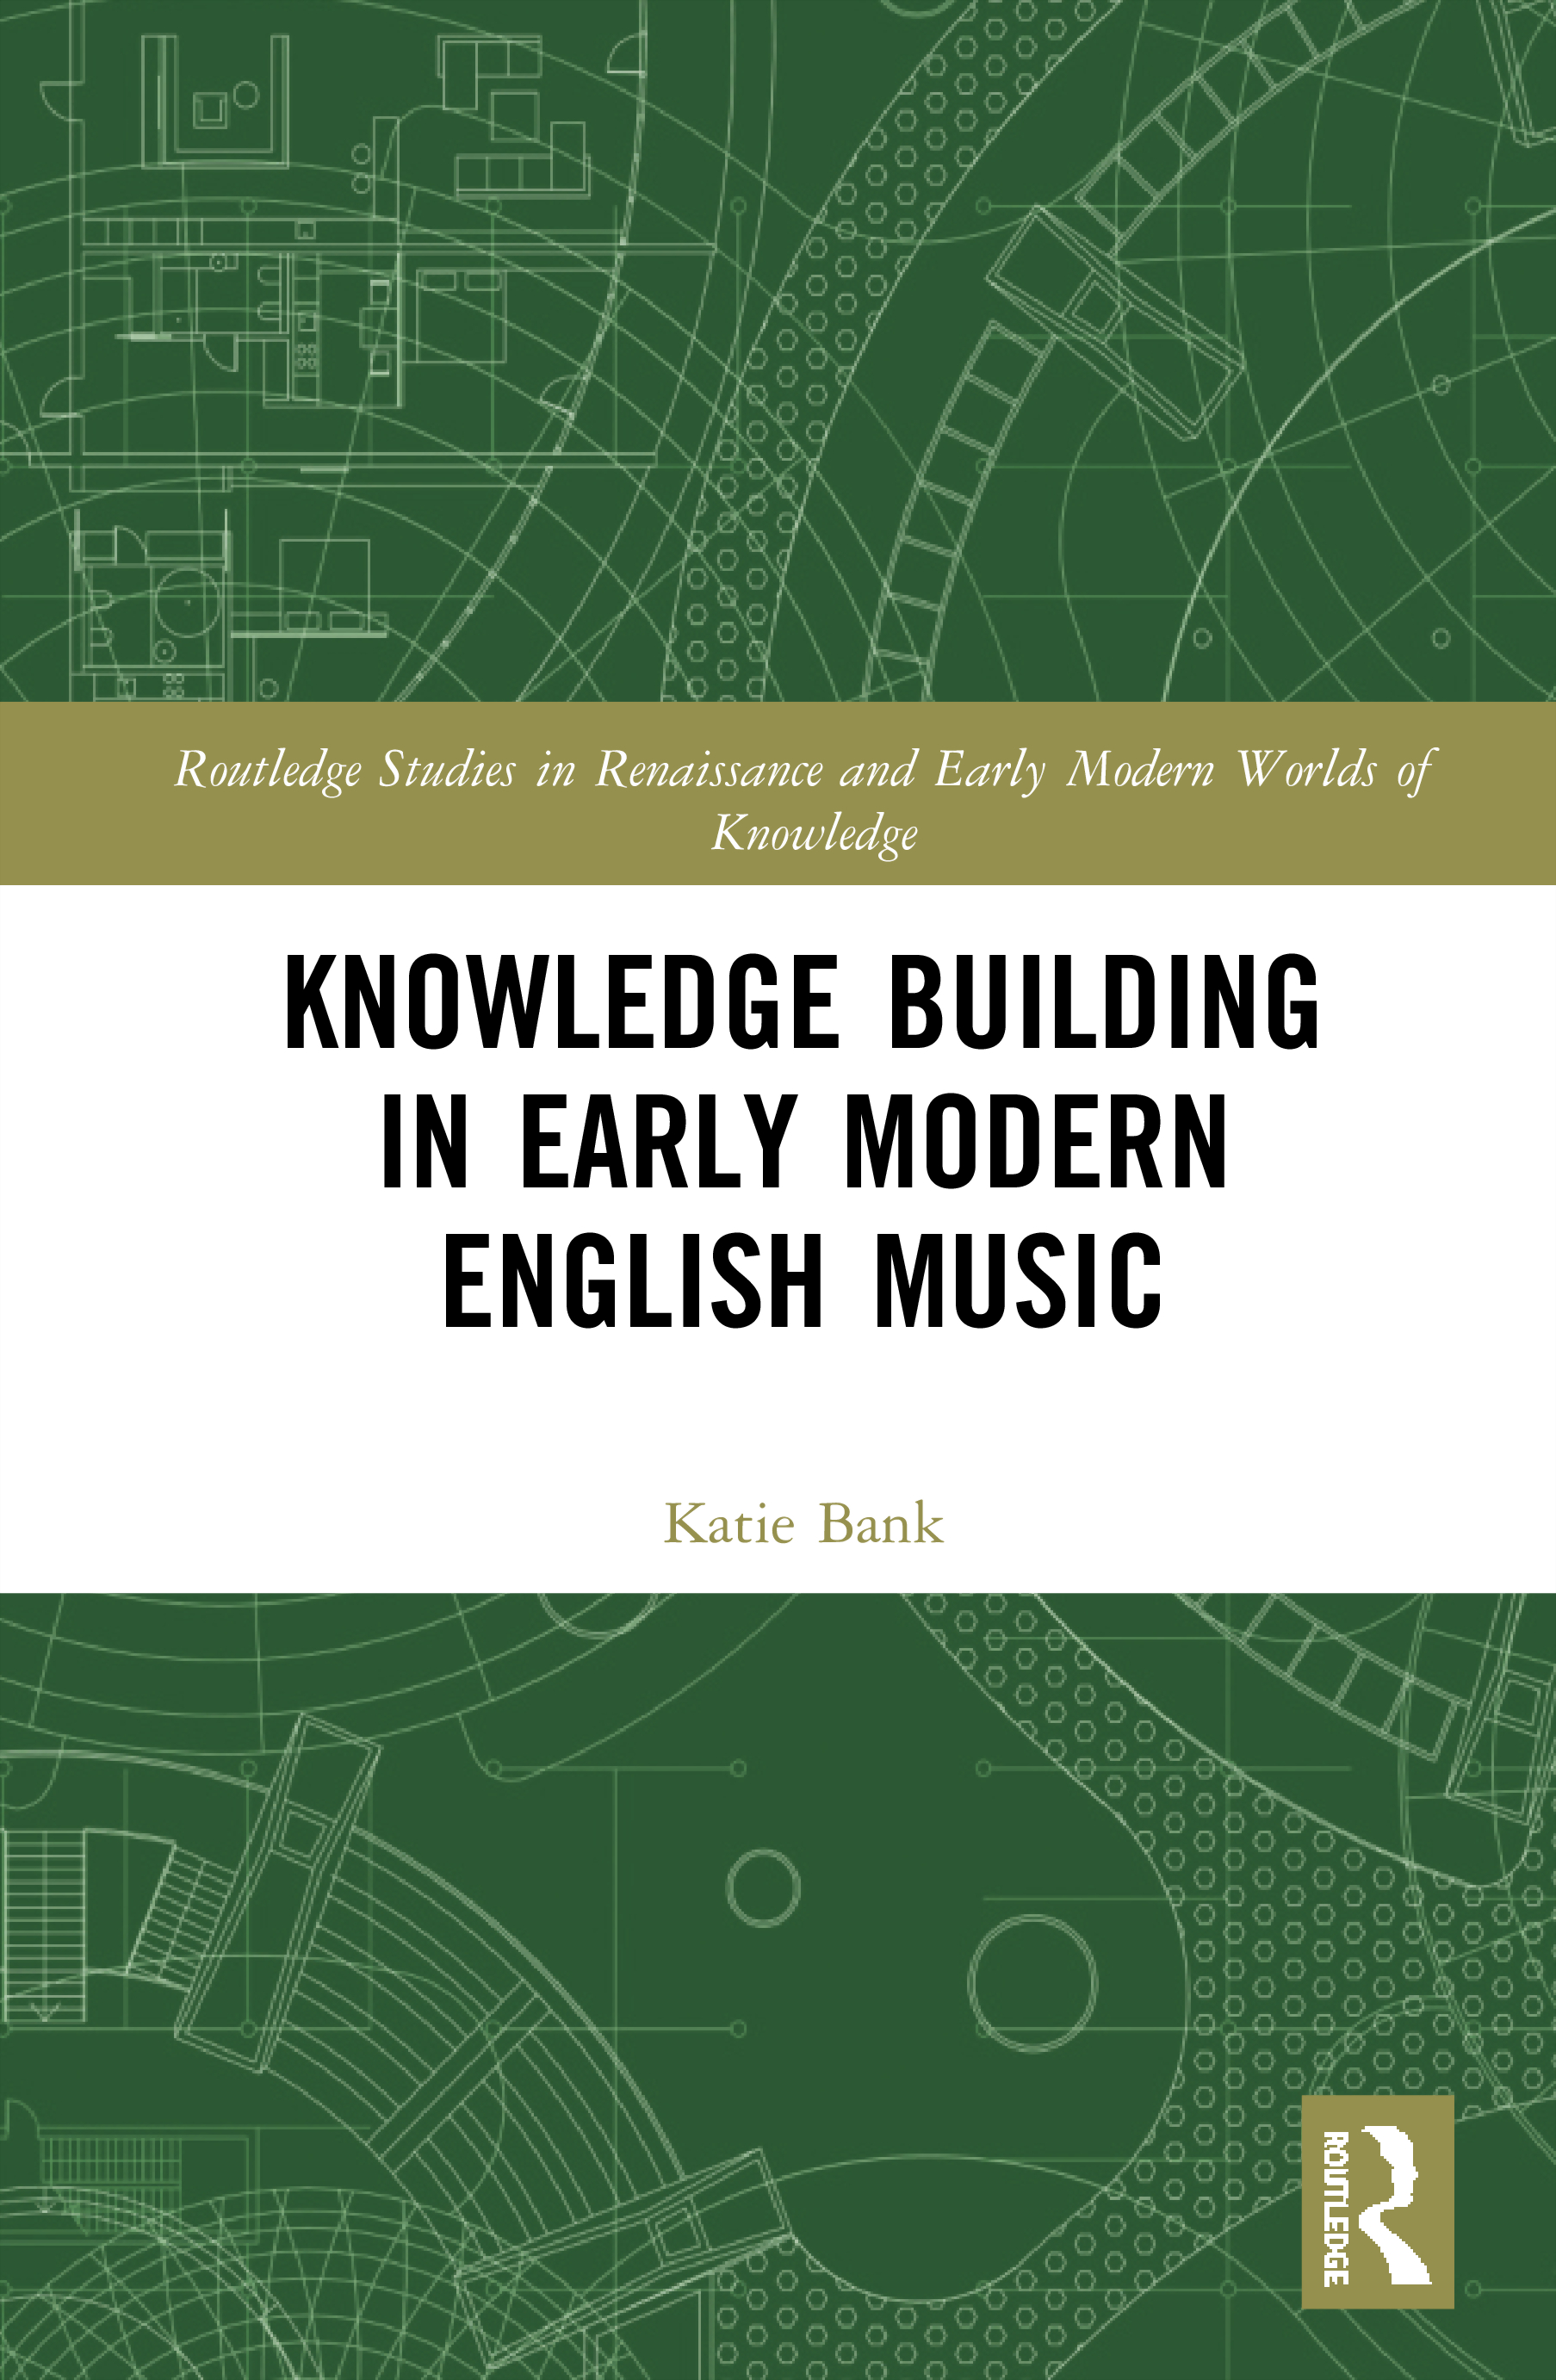 Knowledge Building in Early Modern English Music: 1st Edition (Hardback) book cover